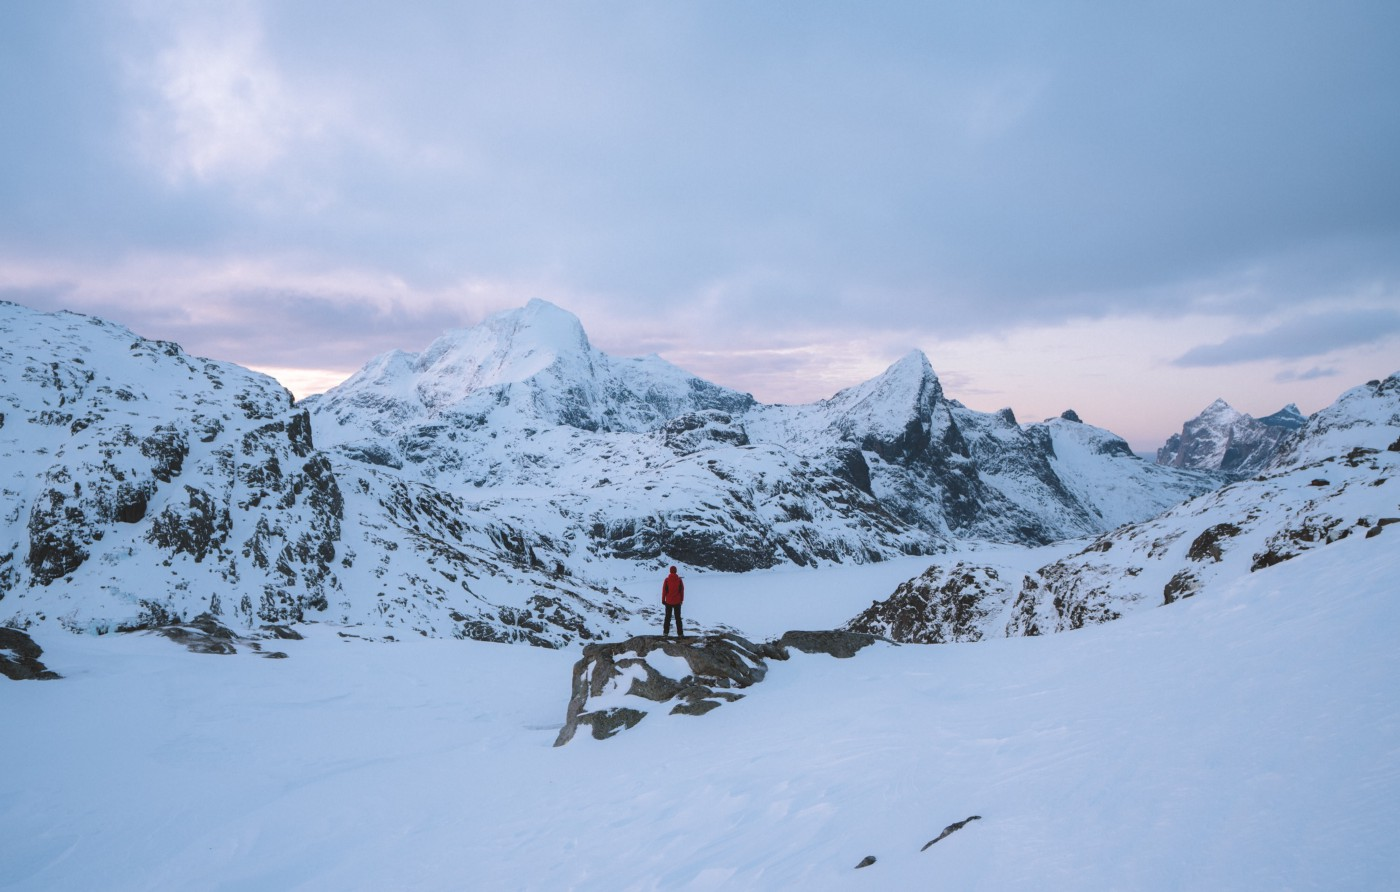 Person standing in front of snowy mountains